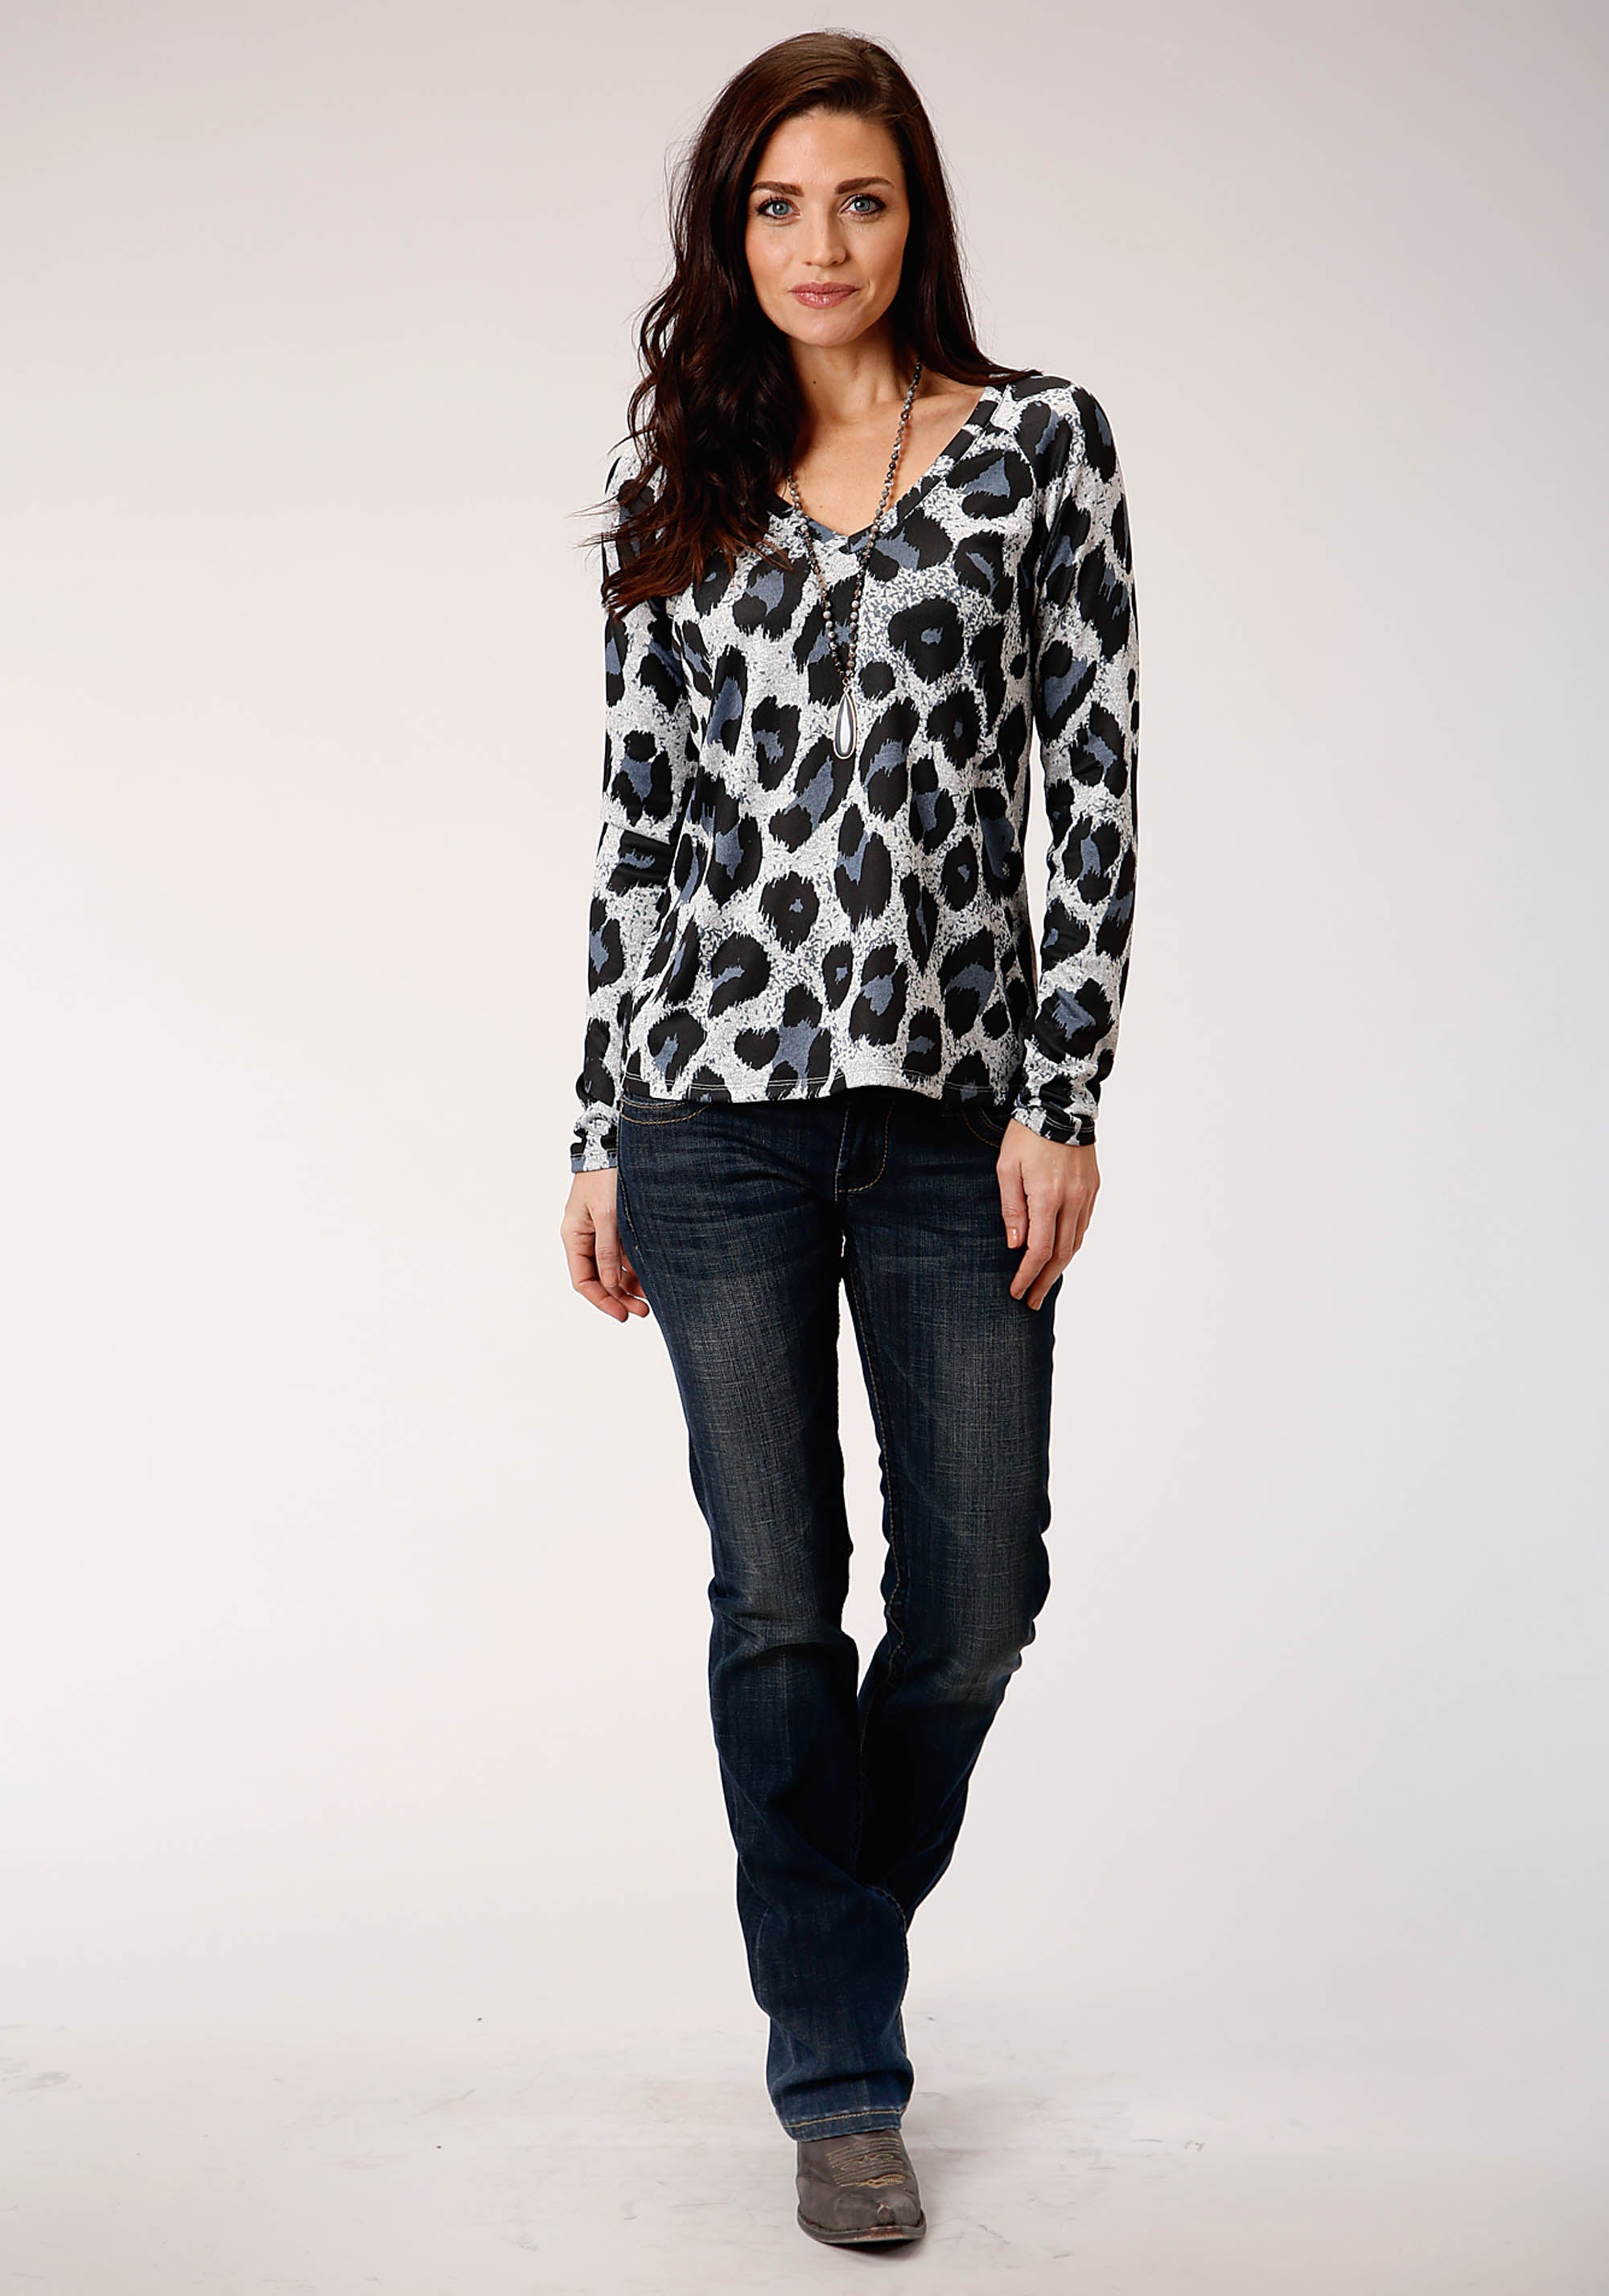 ROPER WOMENS GREY 00382 SWEATER KNIT V NECK TOP STUDIO WEST- THE WILD SIDE LONG SLEEVE